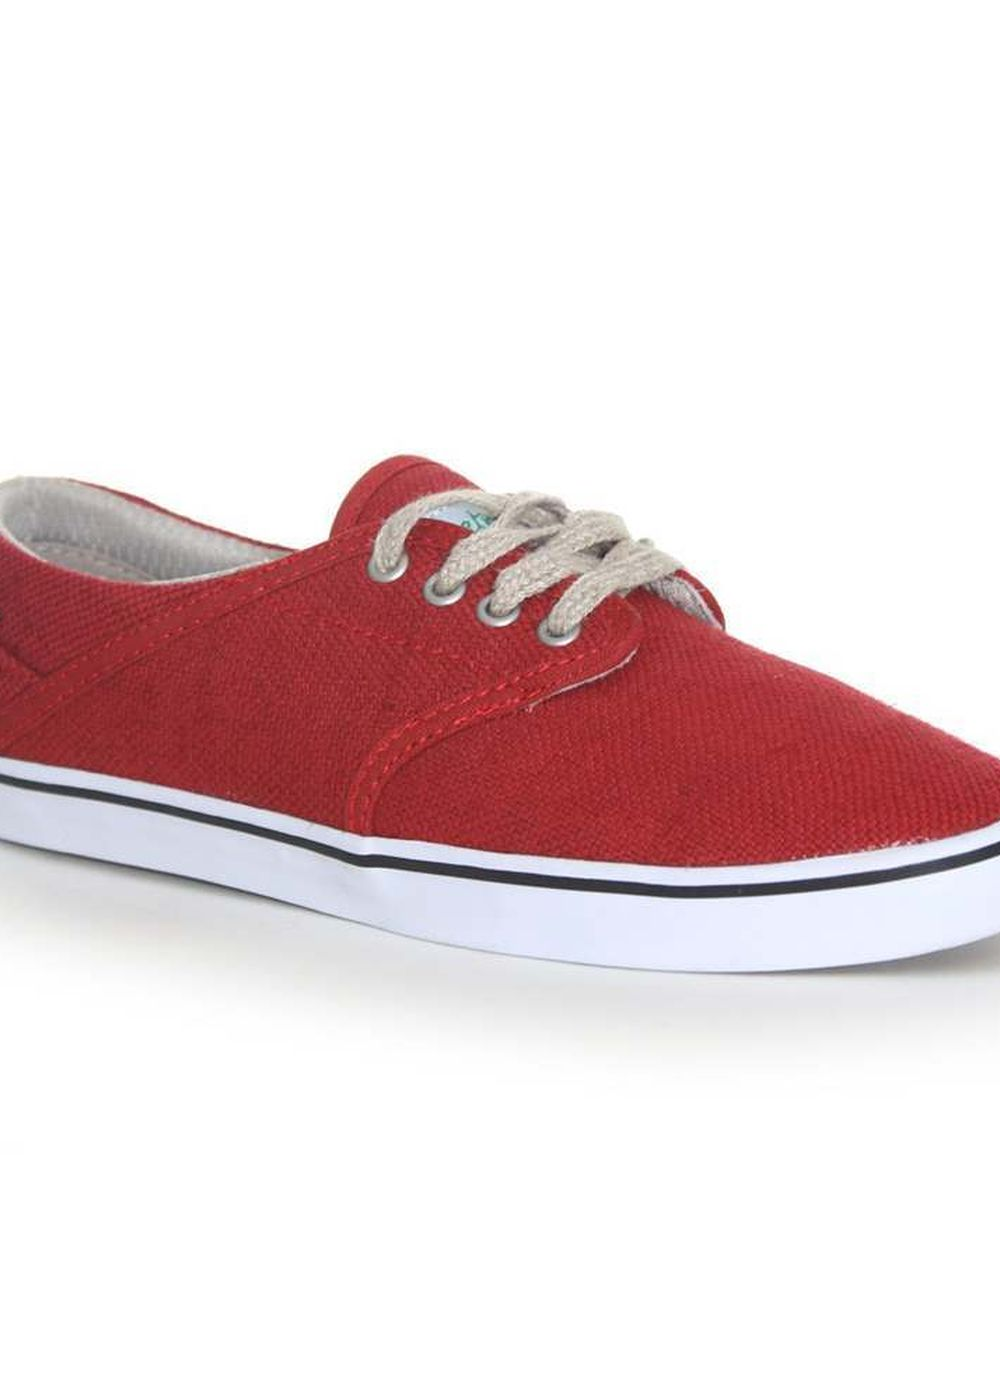 ETNIES KAB CAPRICE ECO SHOES Red/White